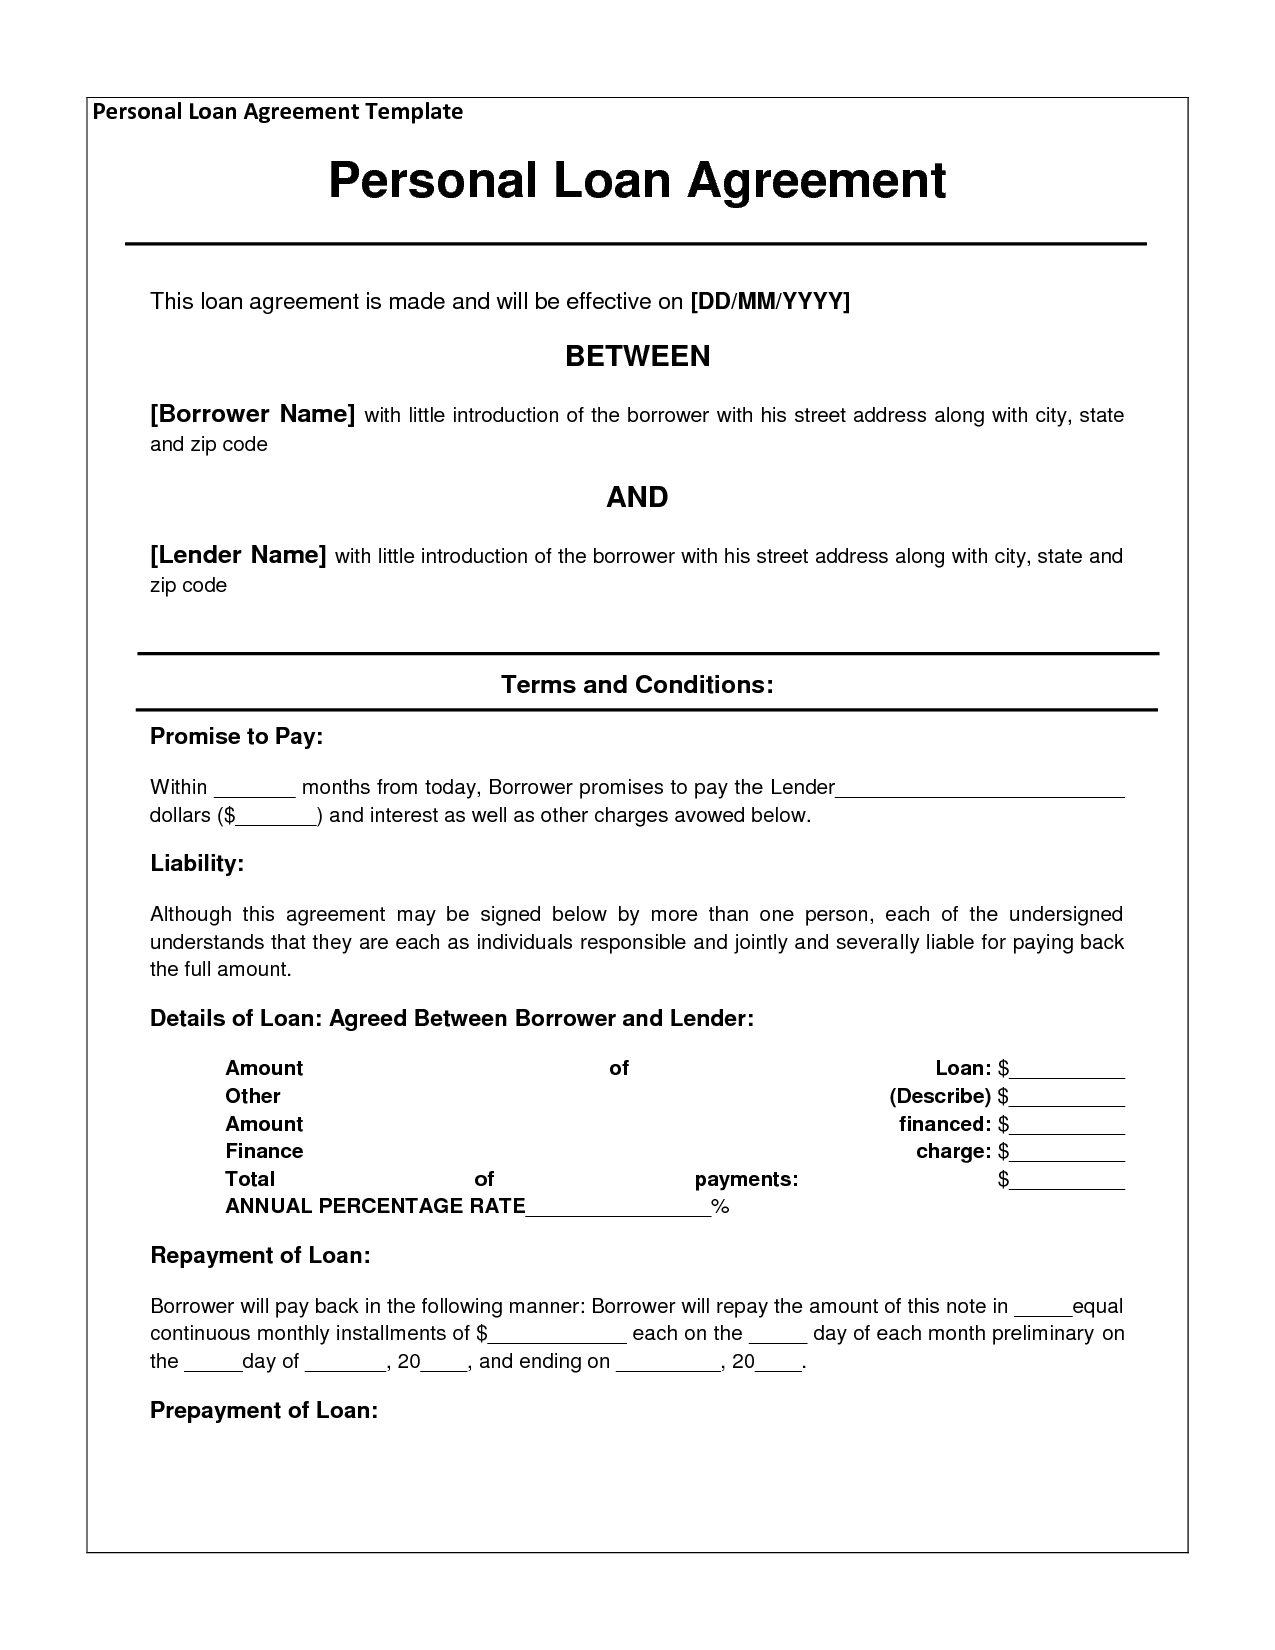 Free personal loan agreement form template 1000 Approved in 2 – Template Loan Agreement Free